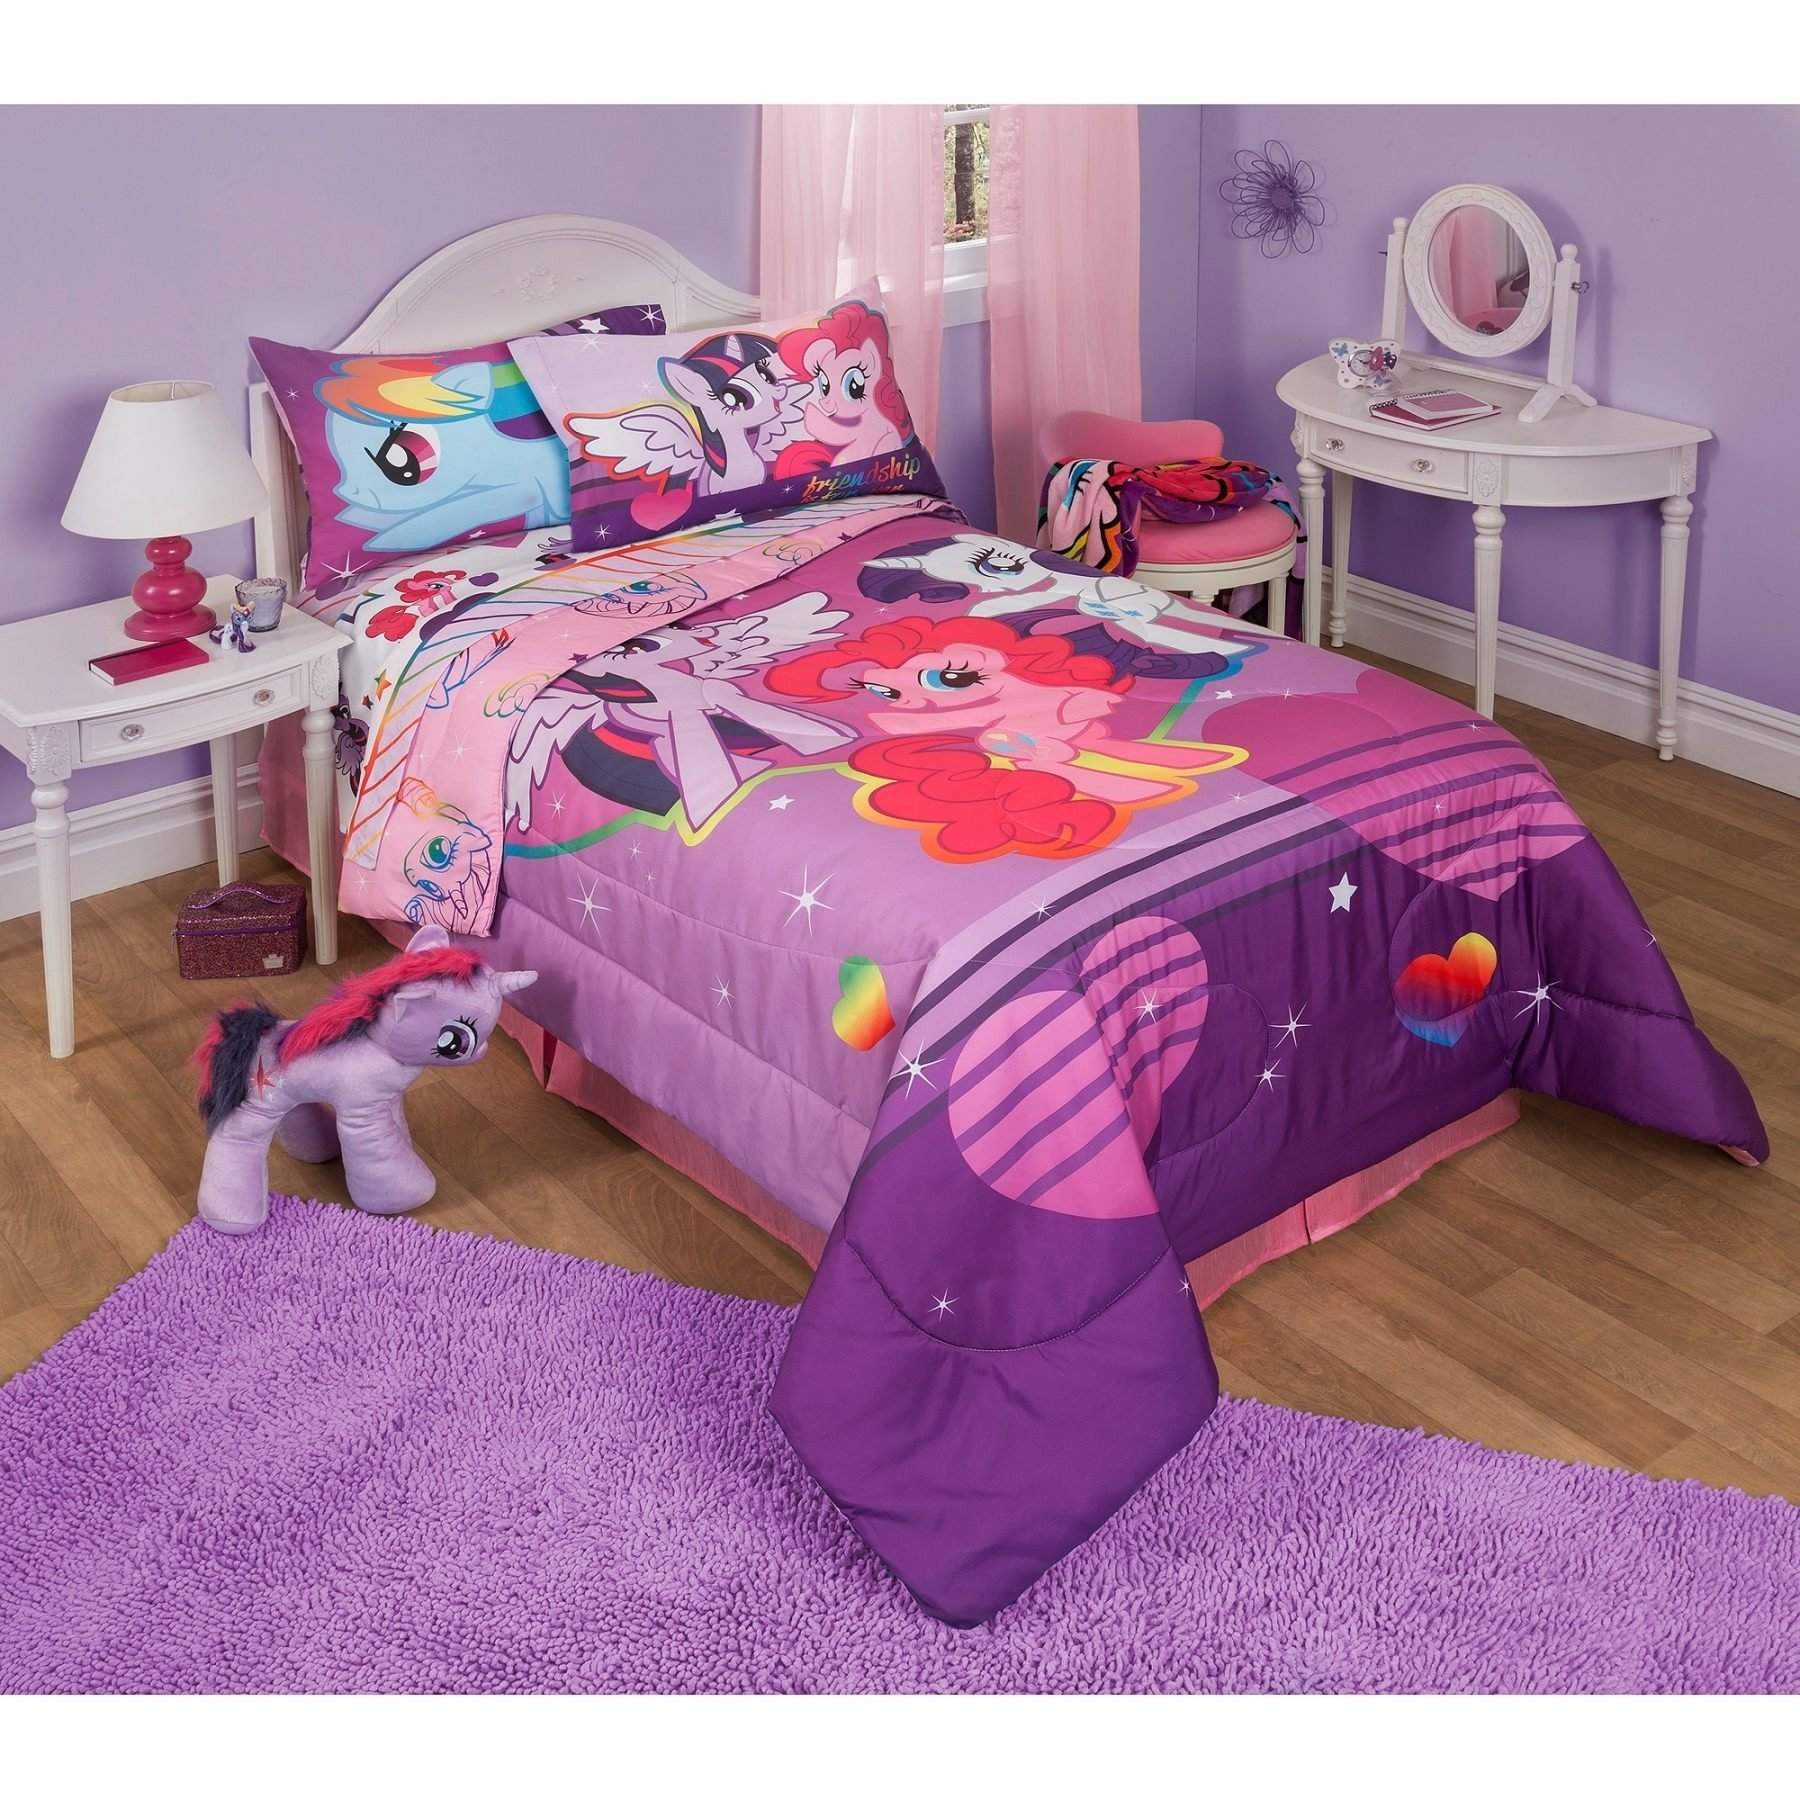 well my little pony bedroom ideas 76 to bedroom set with my little